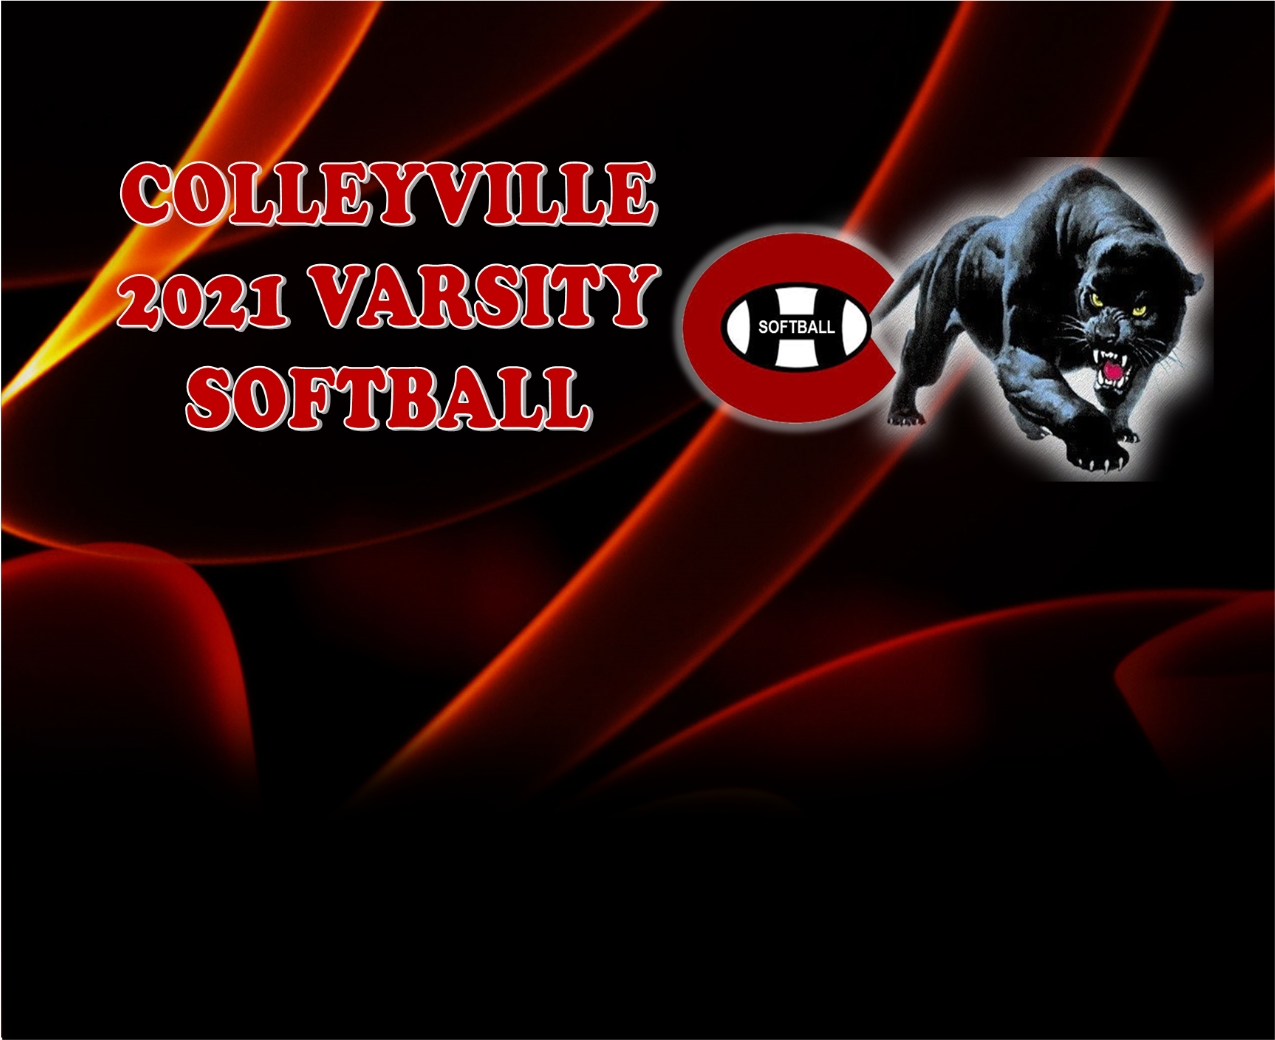 GCISD Softball: Colleyville Panthers Move One Step Closer to District Championship with Win Over Birdville Hawks 6-2